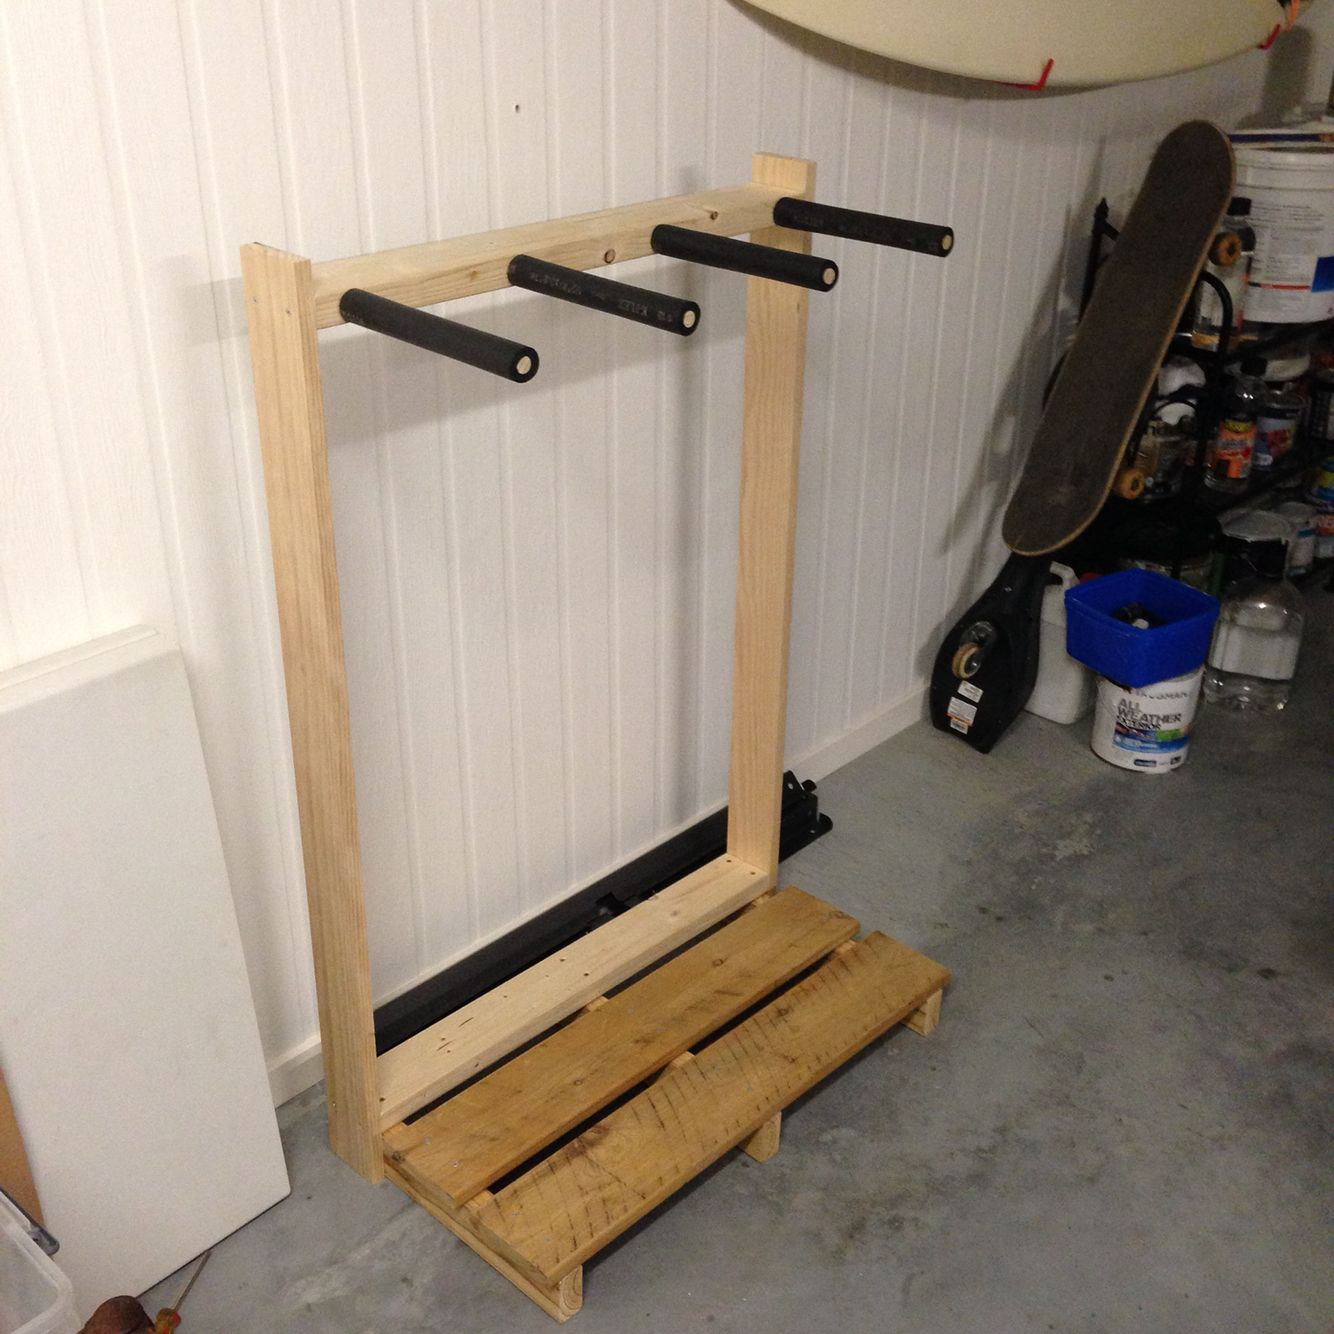 Pallet Surfboard Rack An Easy Project That Will Help Protect Your Boards  And Organise Them.